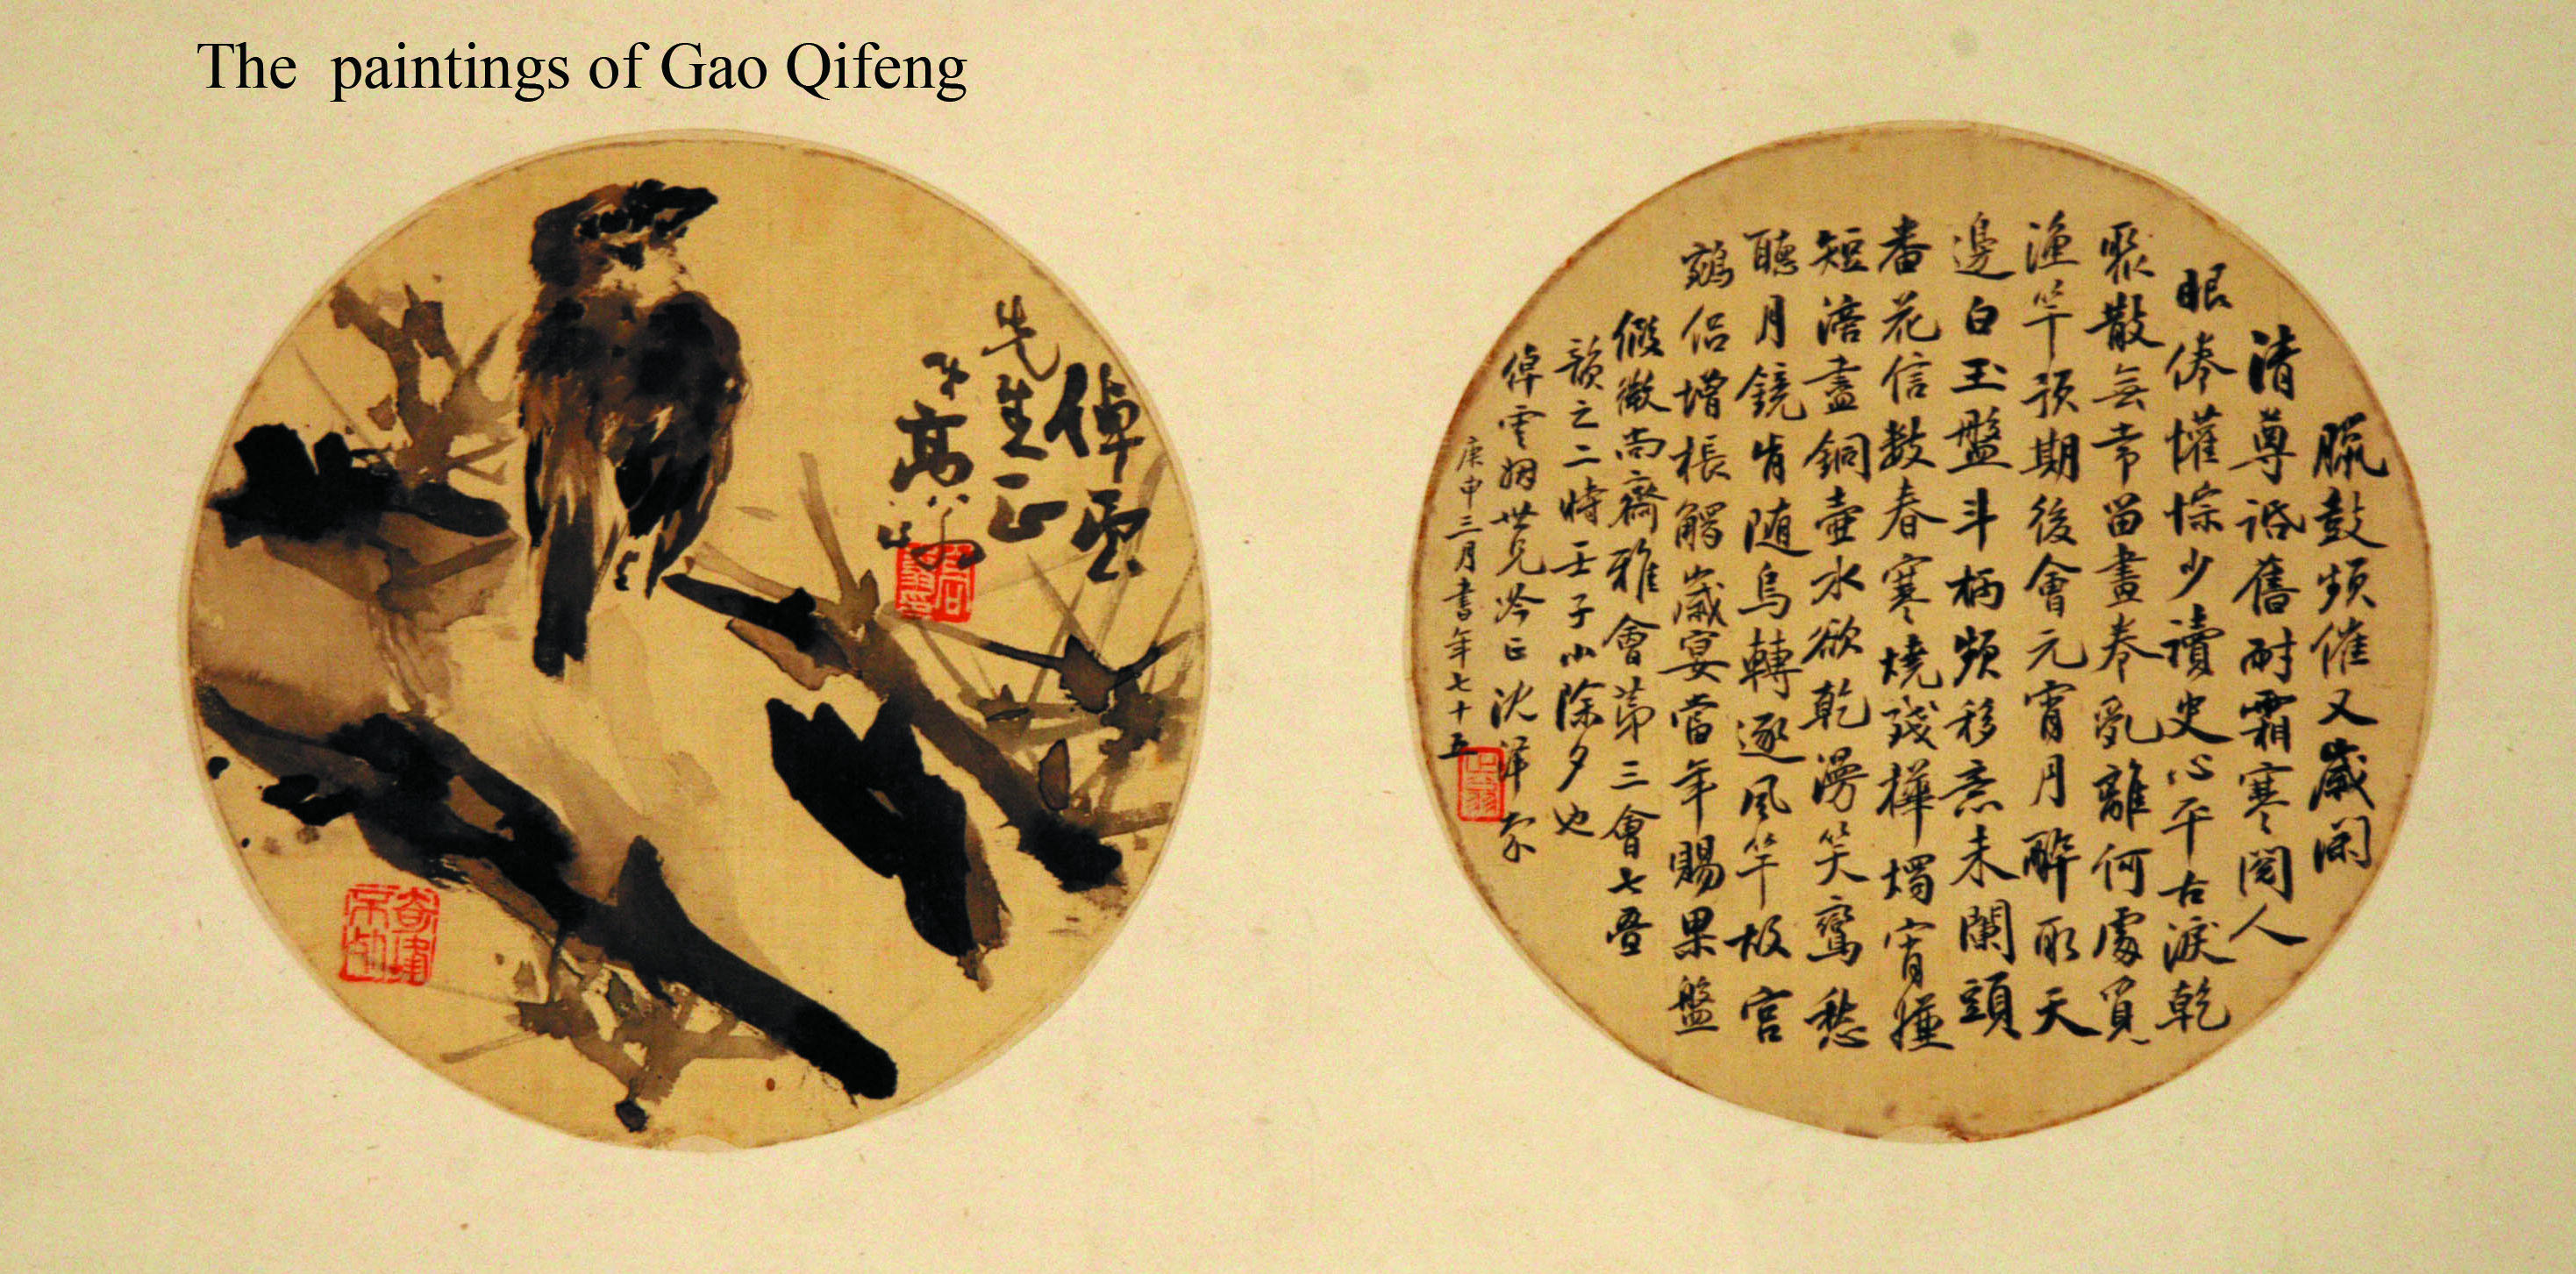 The paintings of Gao qifeng